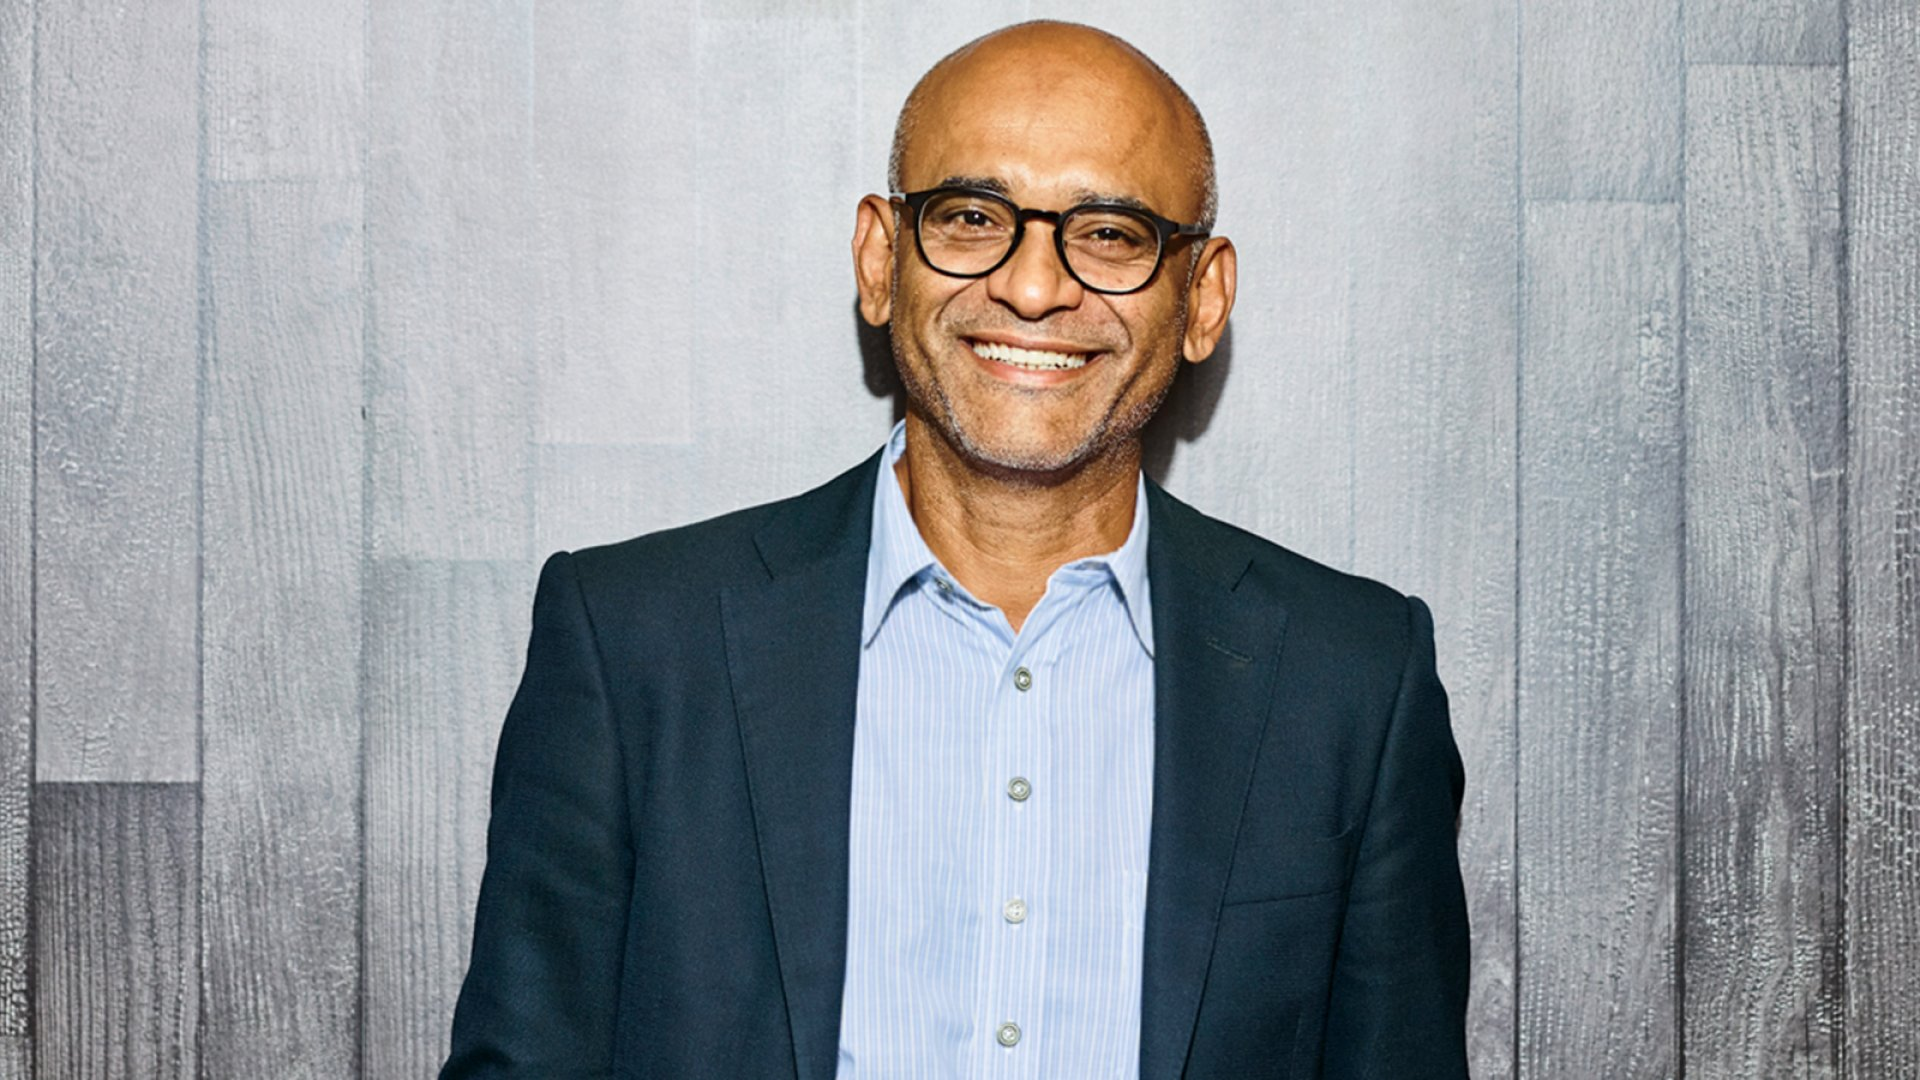 Chet Kanojia is the founder of Aereo and new broadband venture Starry.